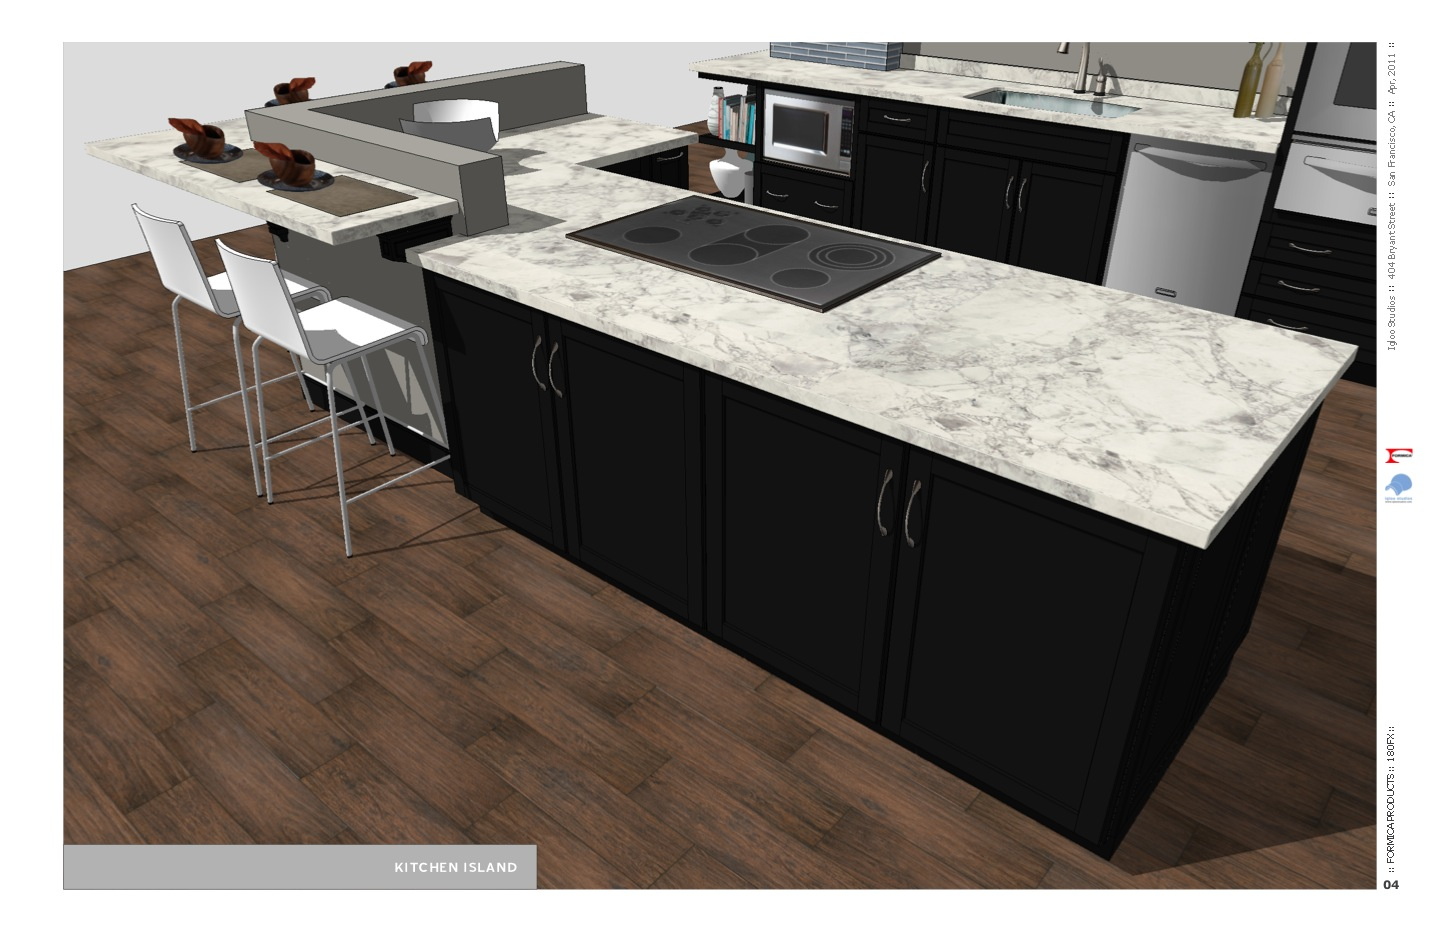 Formica Countertops Product : Igloo studios products for sketchup formica